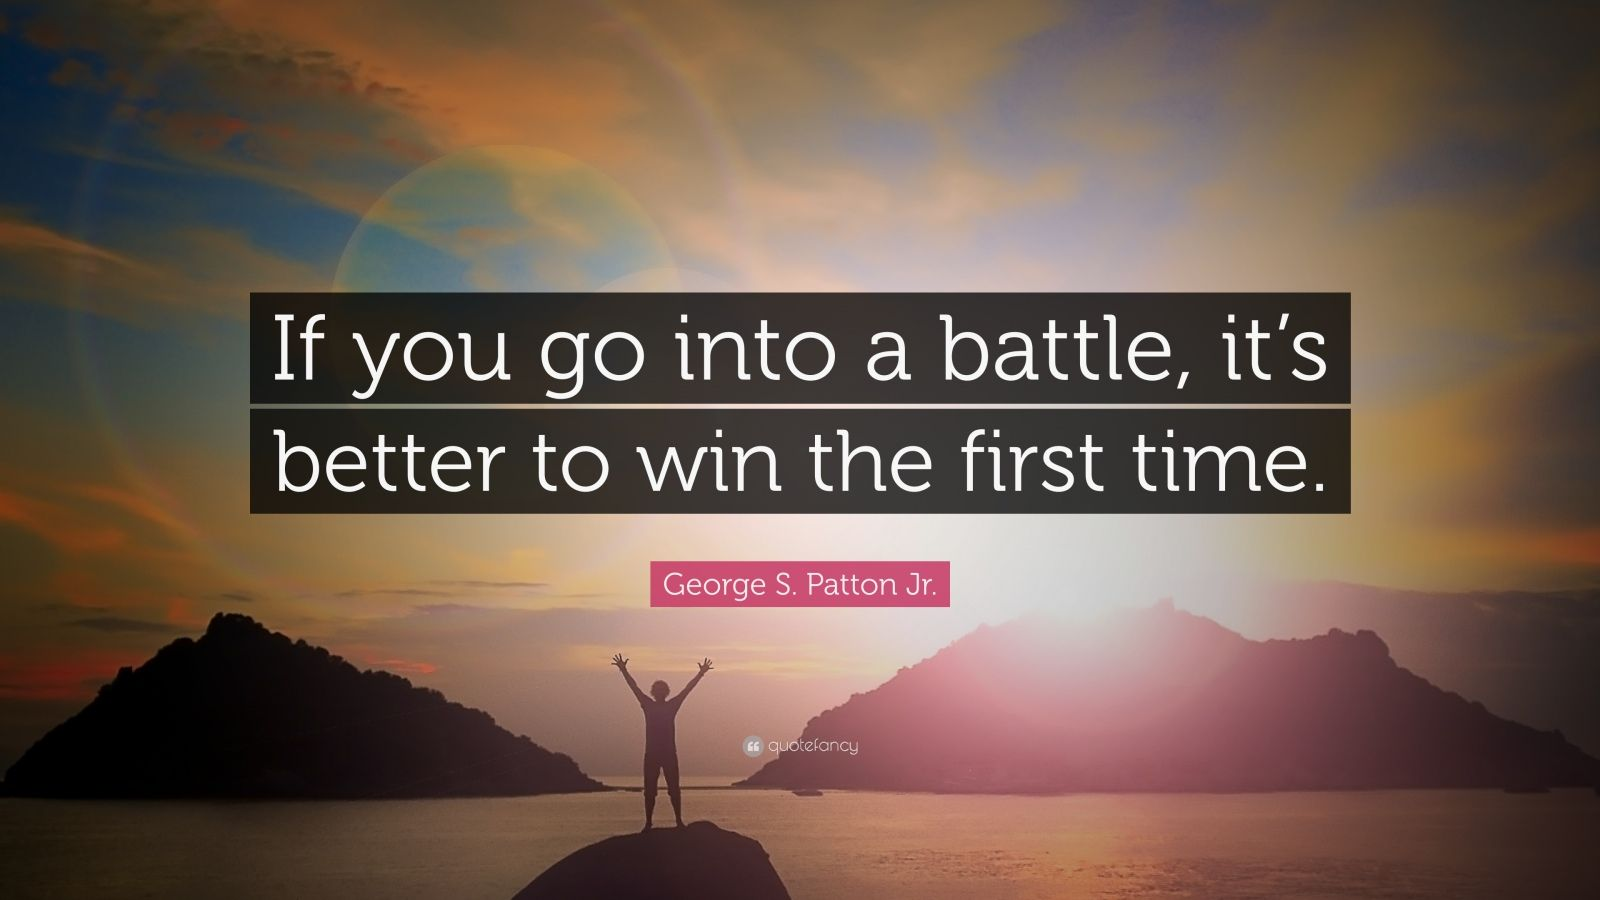 """George S. Patton Jr. Quote: """"If you go into a battle, it's better to win the first time."""""""